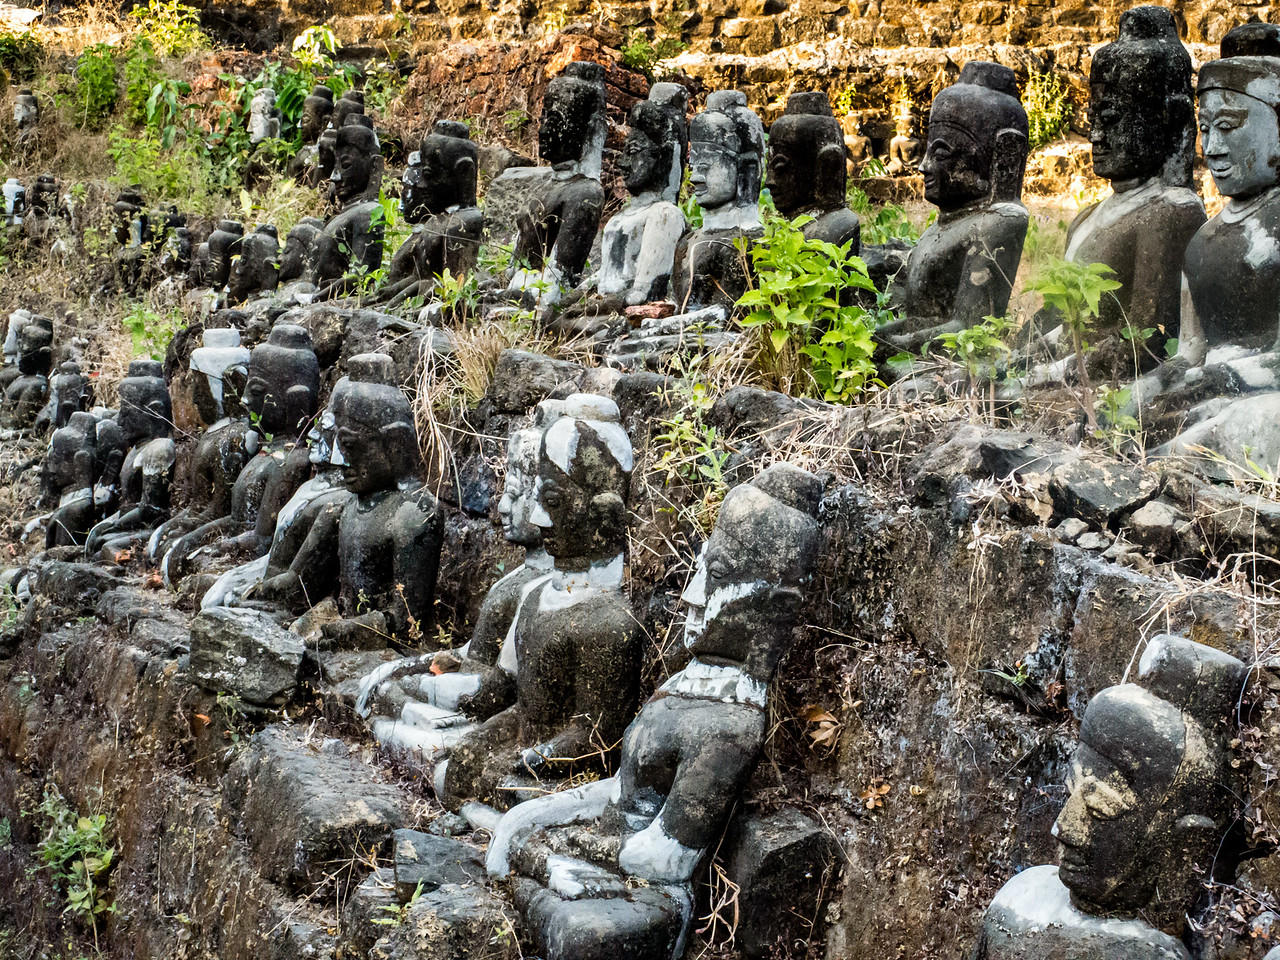 Closeup of Some of the 90,000 Buddhas at Interior of Kothaung Paya Temple